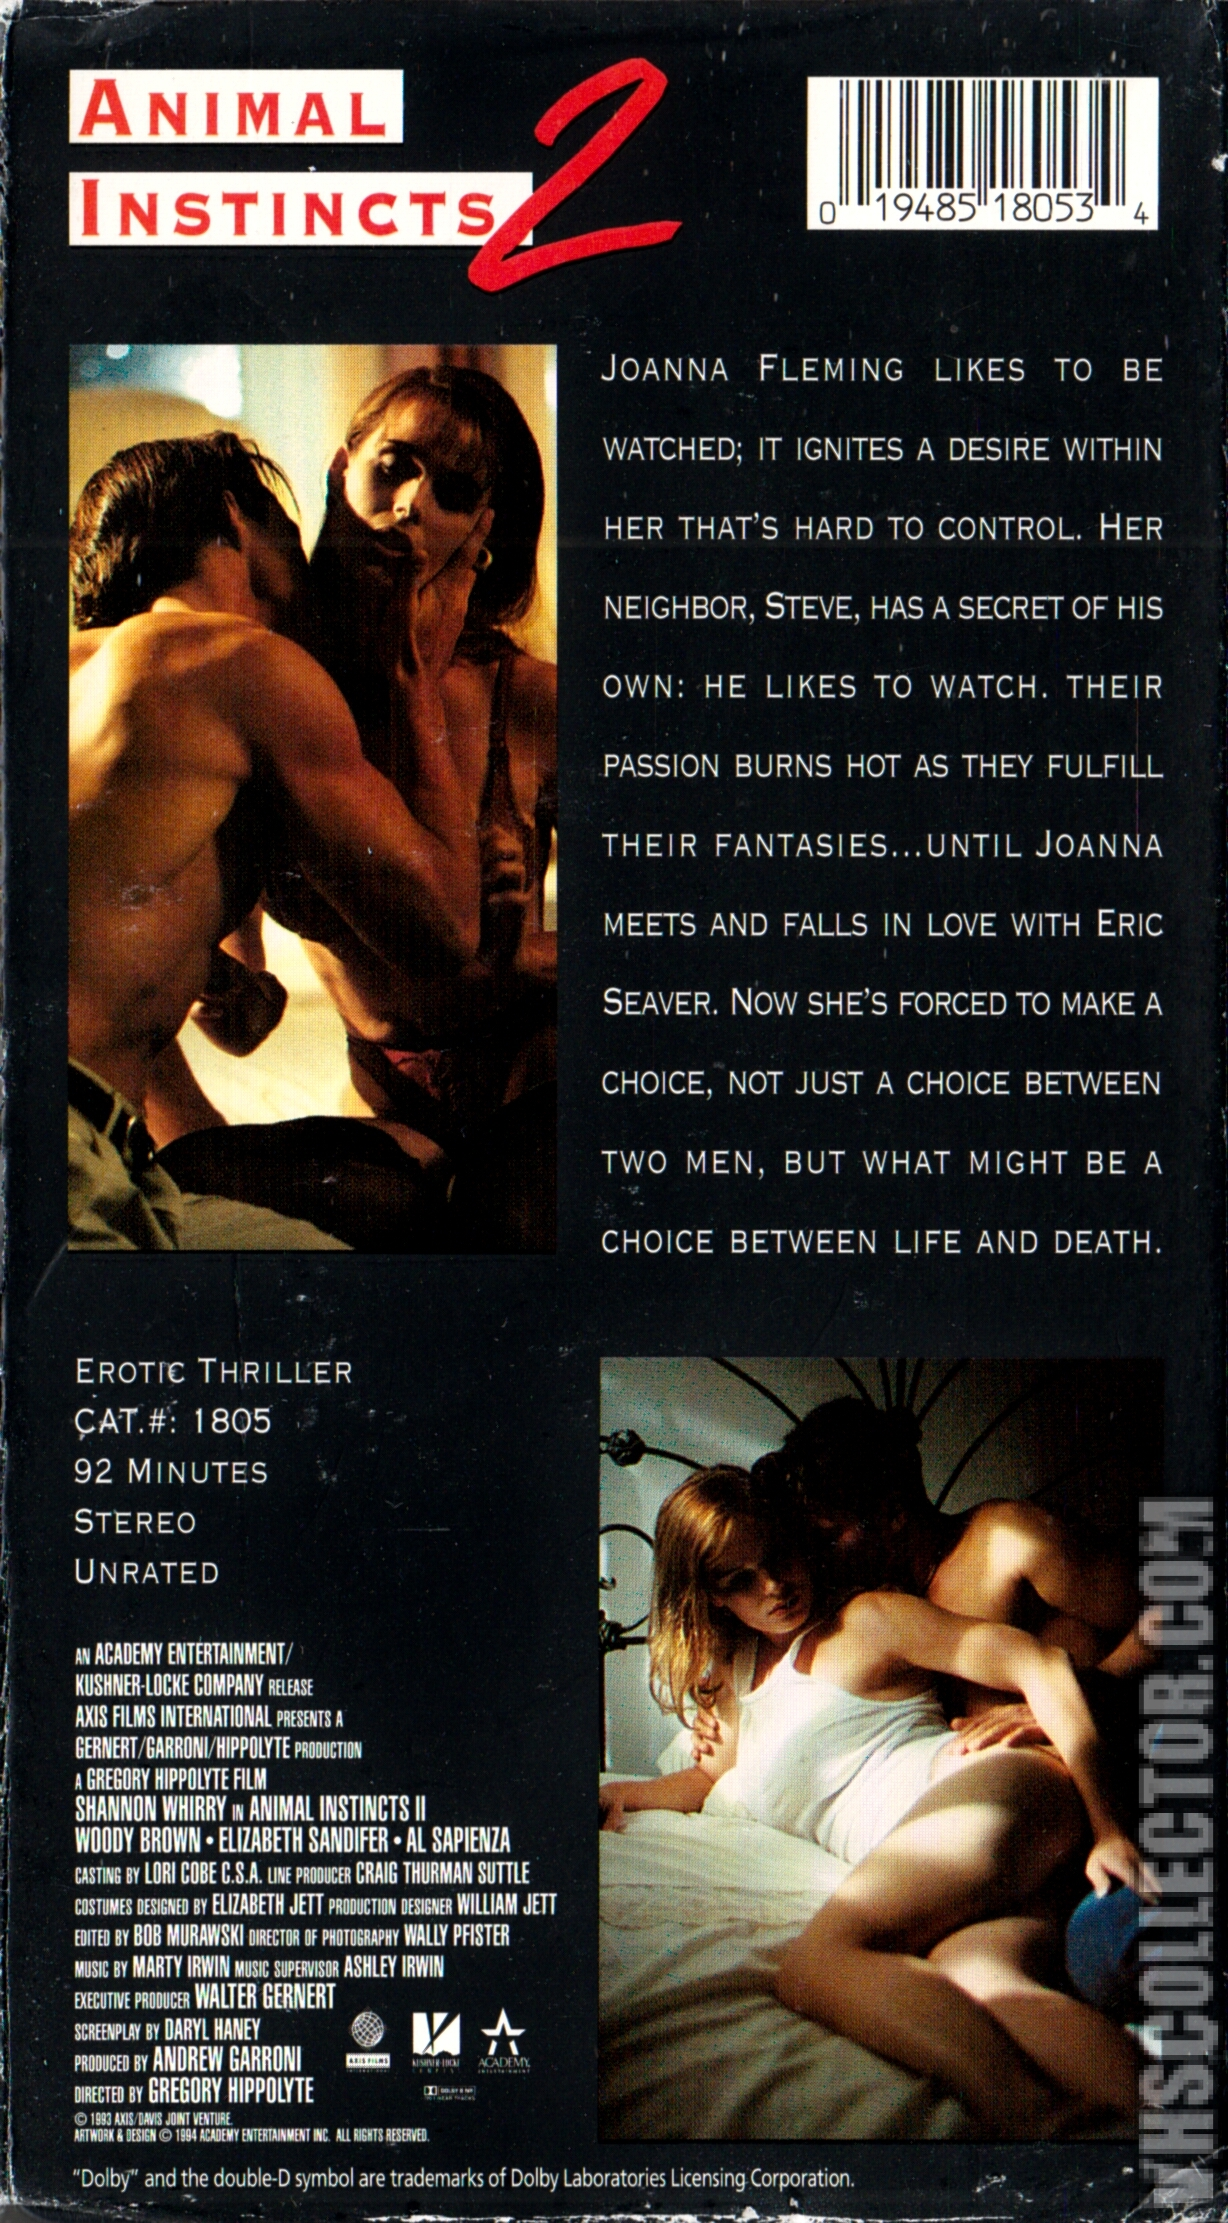 100 Images of Animal Instincts 2 1994